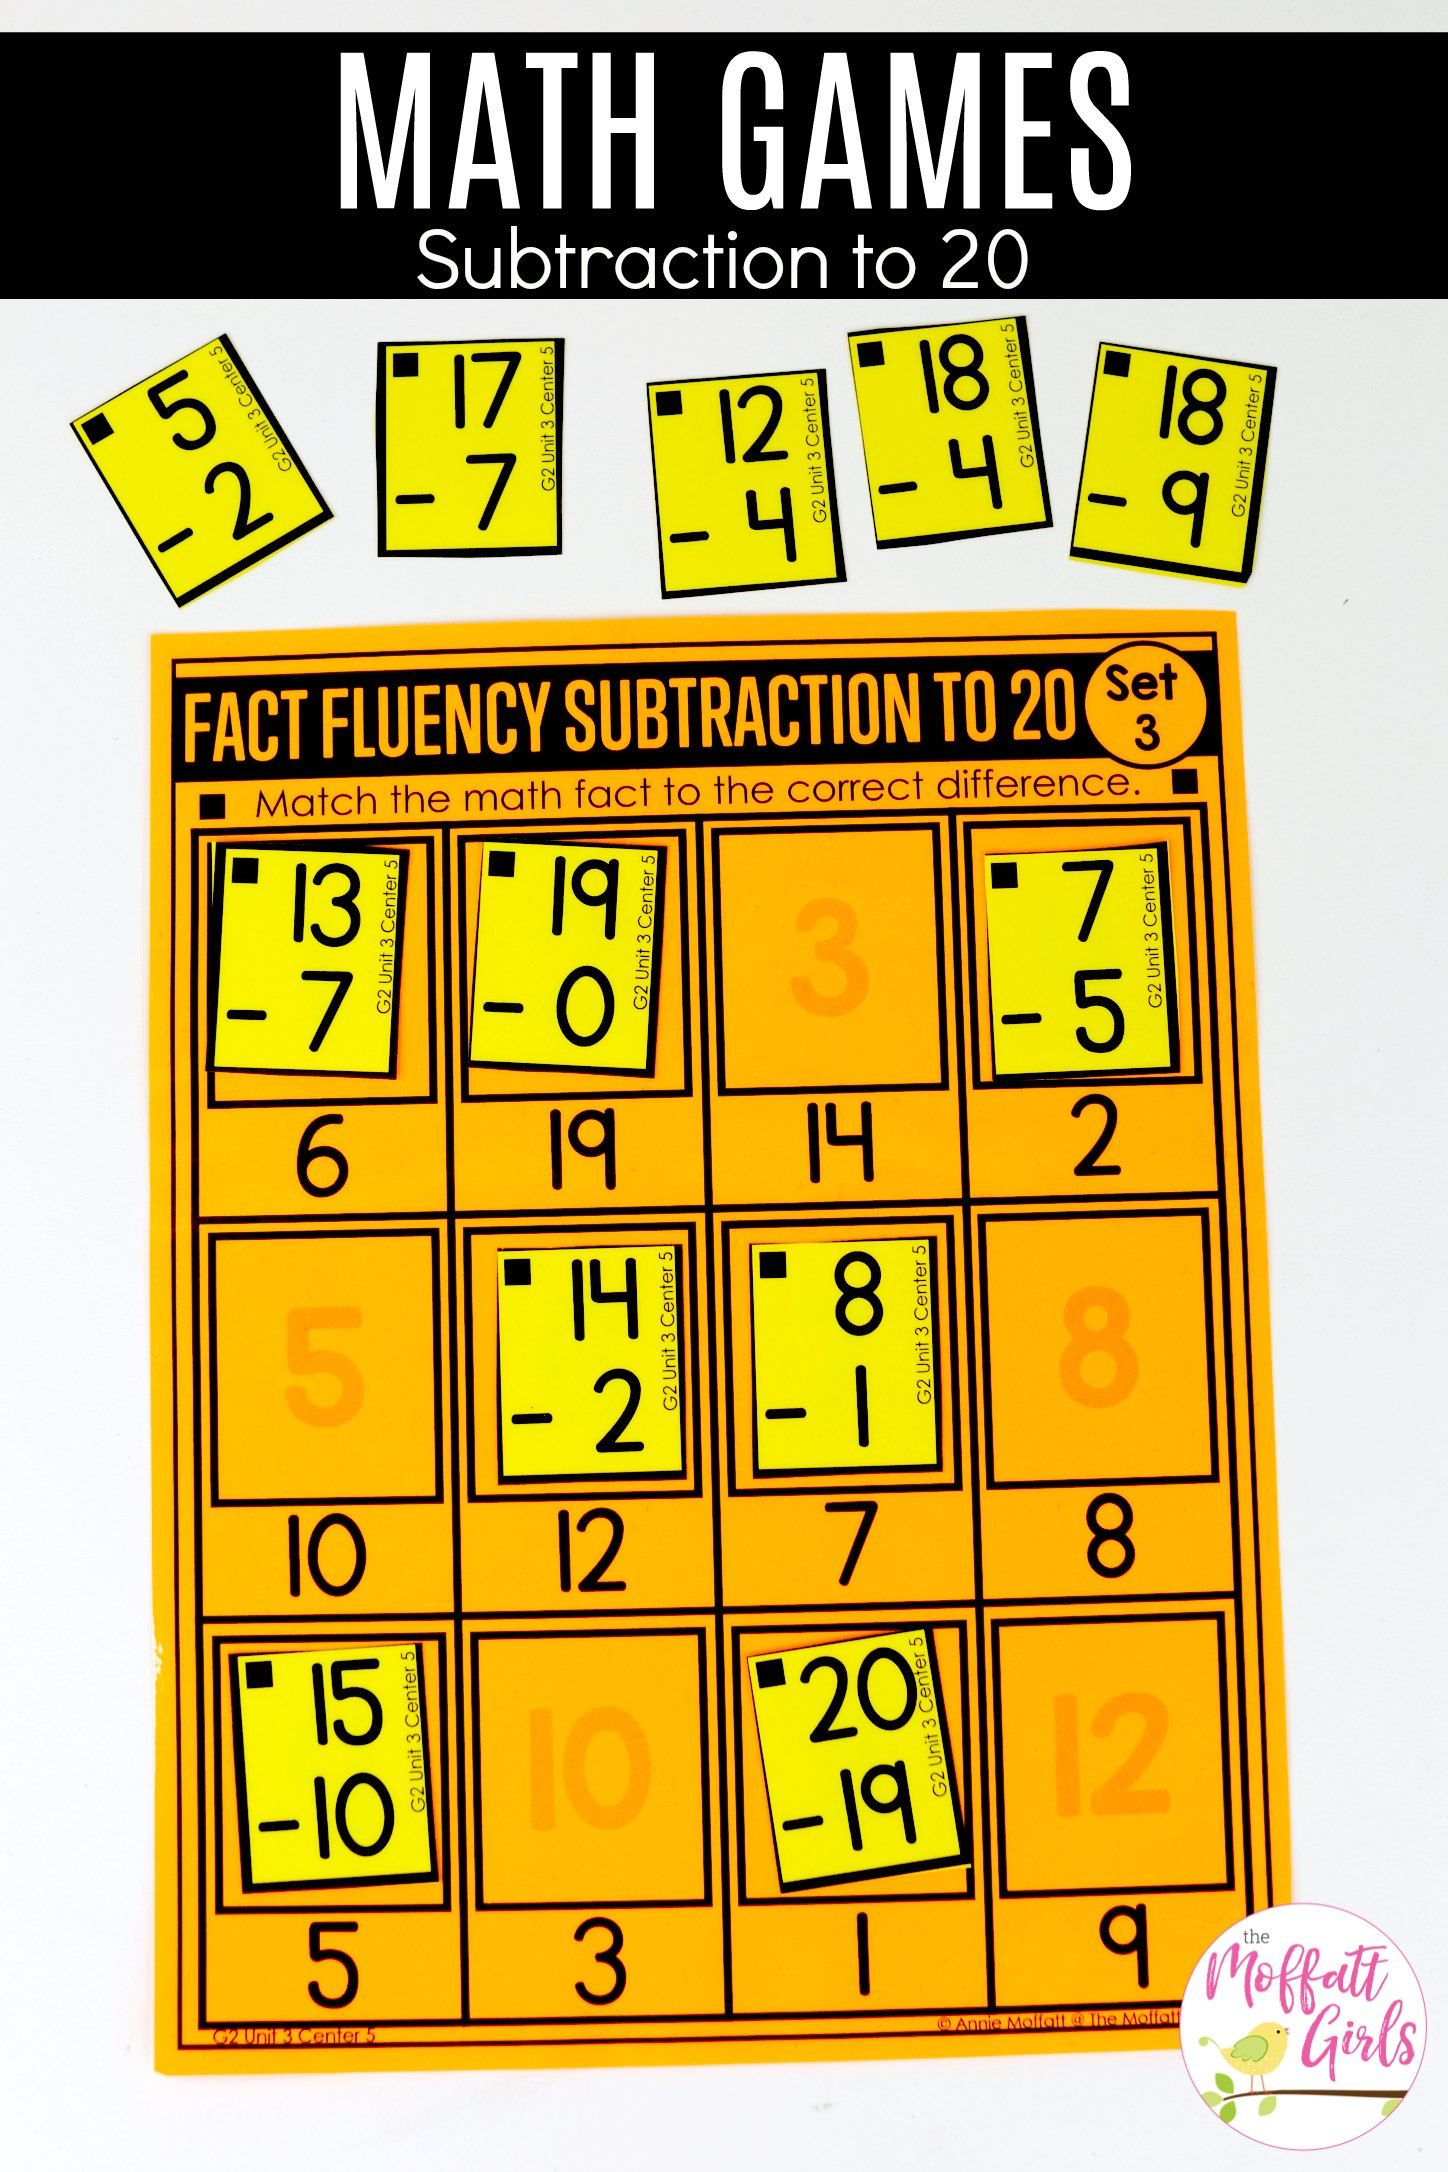 Addition And Subtraction Fluency Up To 100 For 2nd Grade Subtraction Subtraction Facts Subtraction Facts Games [ 2172 x 1448 Pixel ]